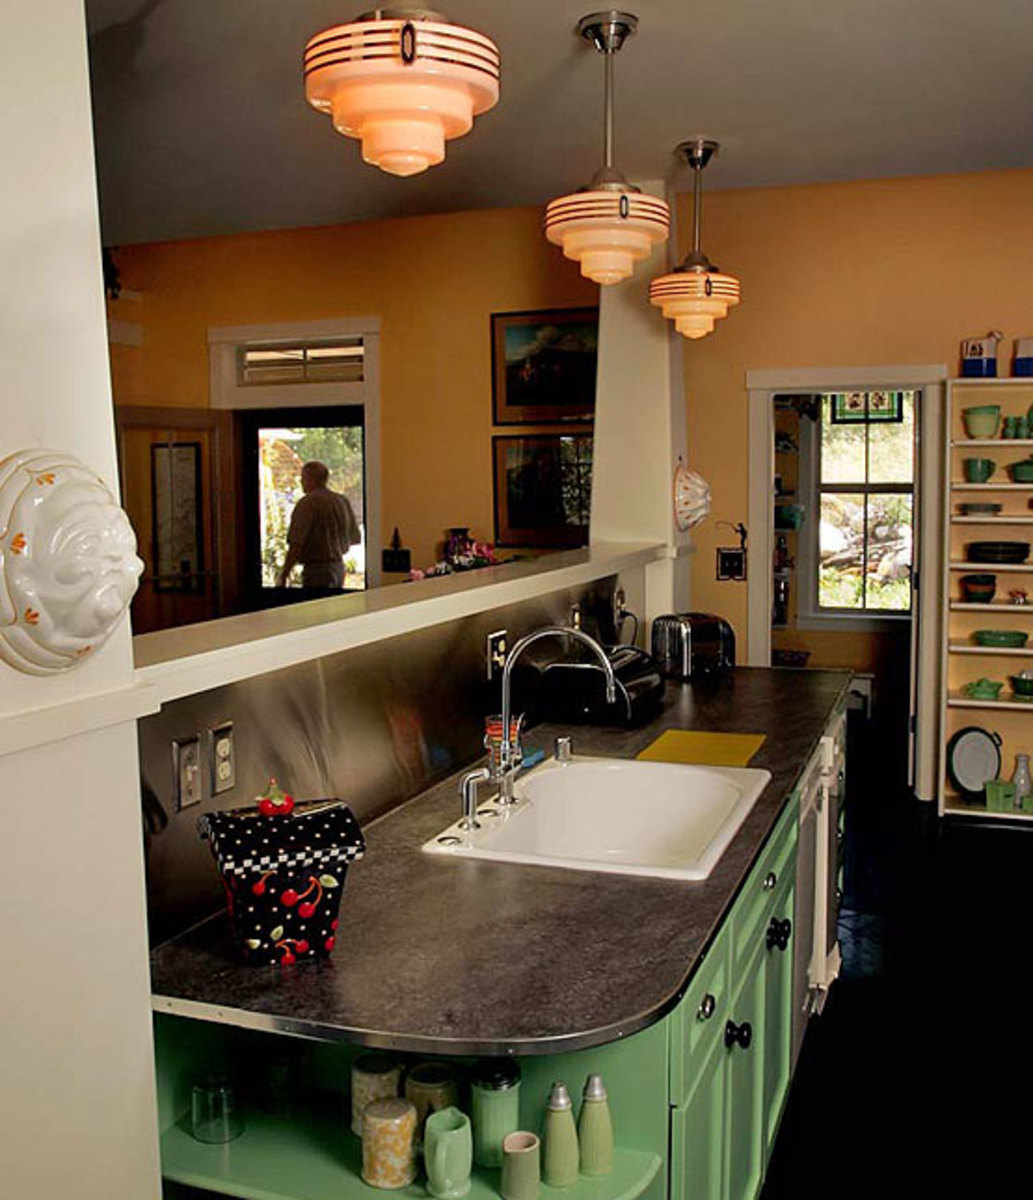 Defining an era: Jazzy ceiling lights capture the mood in a kitchen designed after a Depression-era diner.